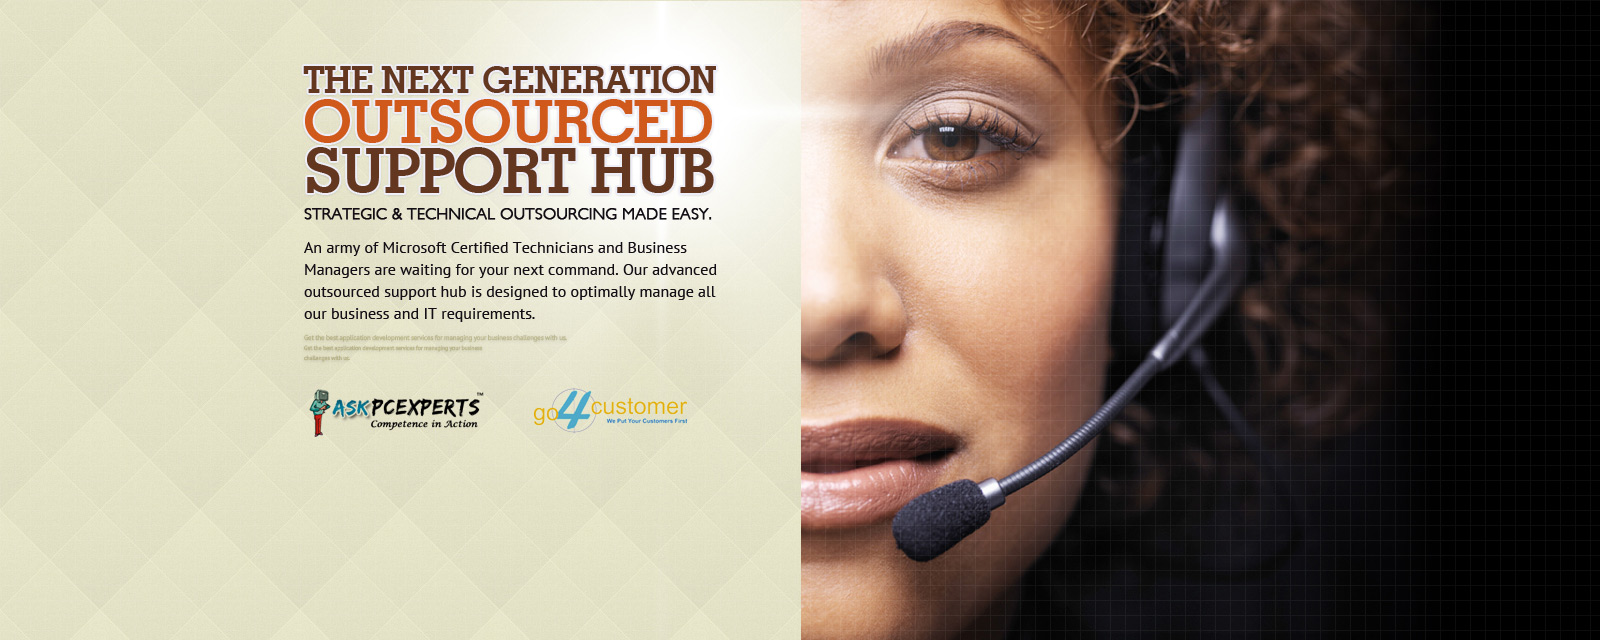 Call Center Services - Go4customer